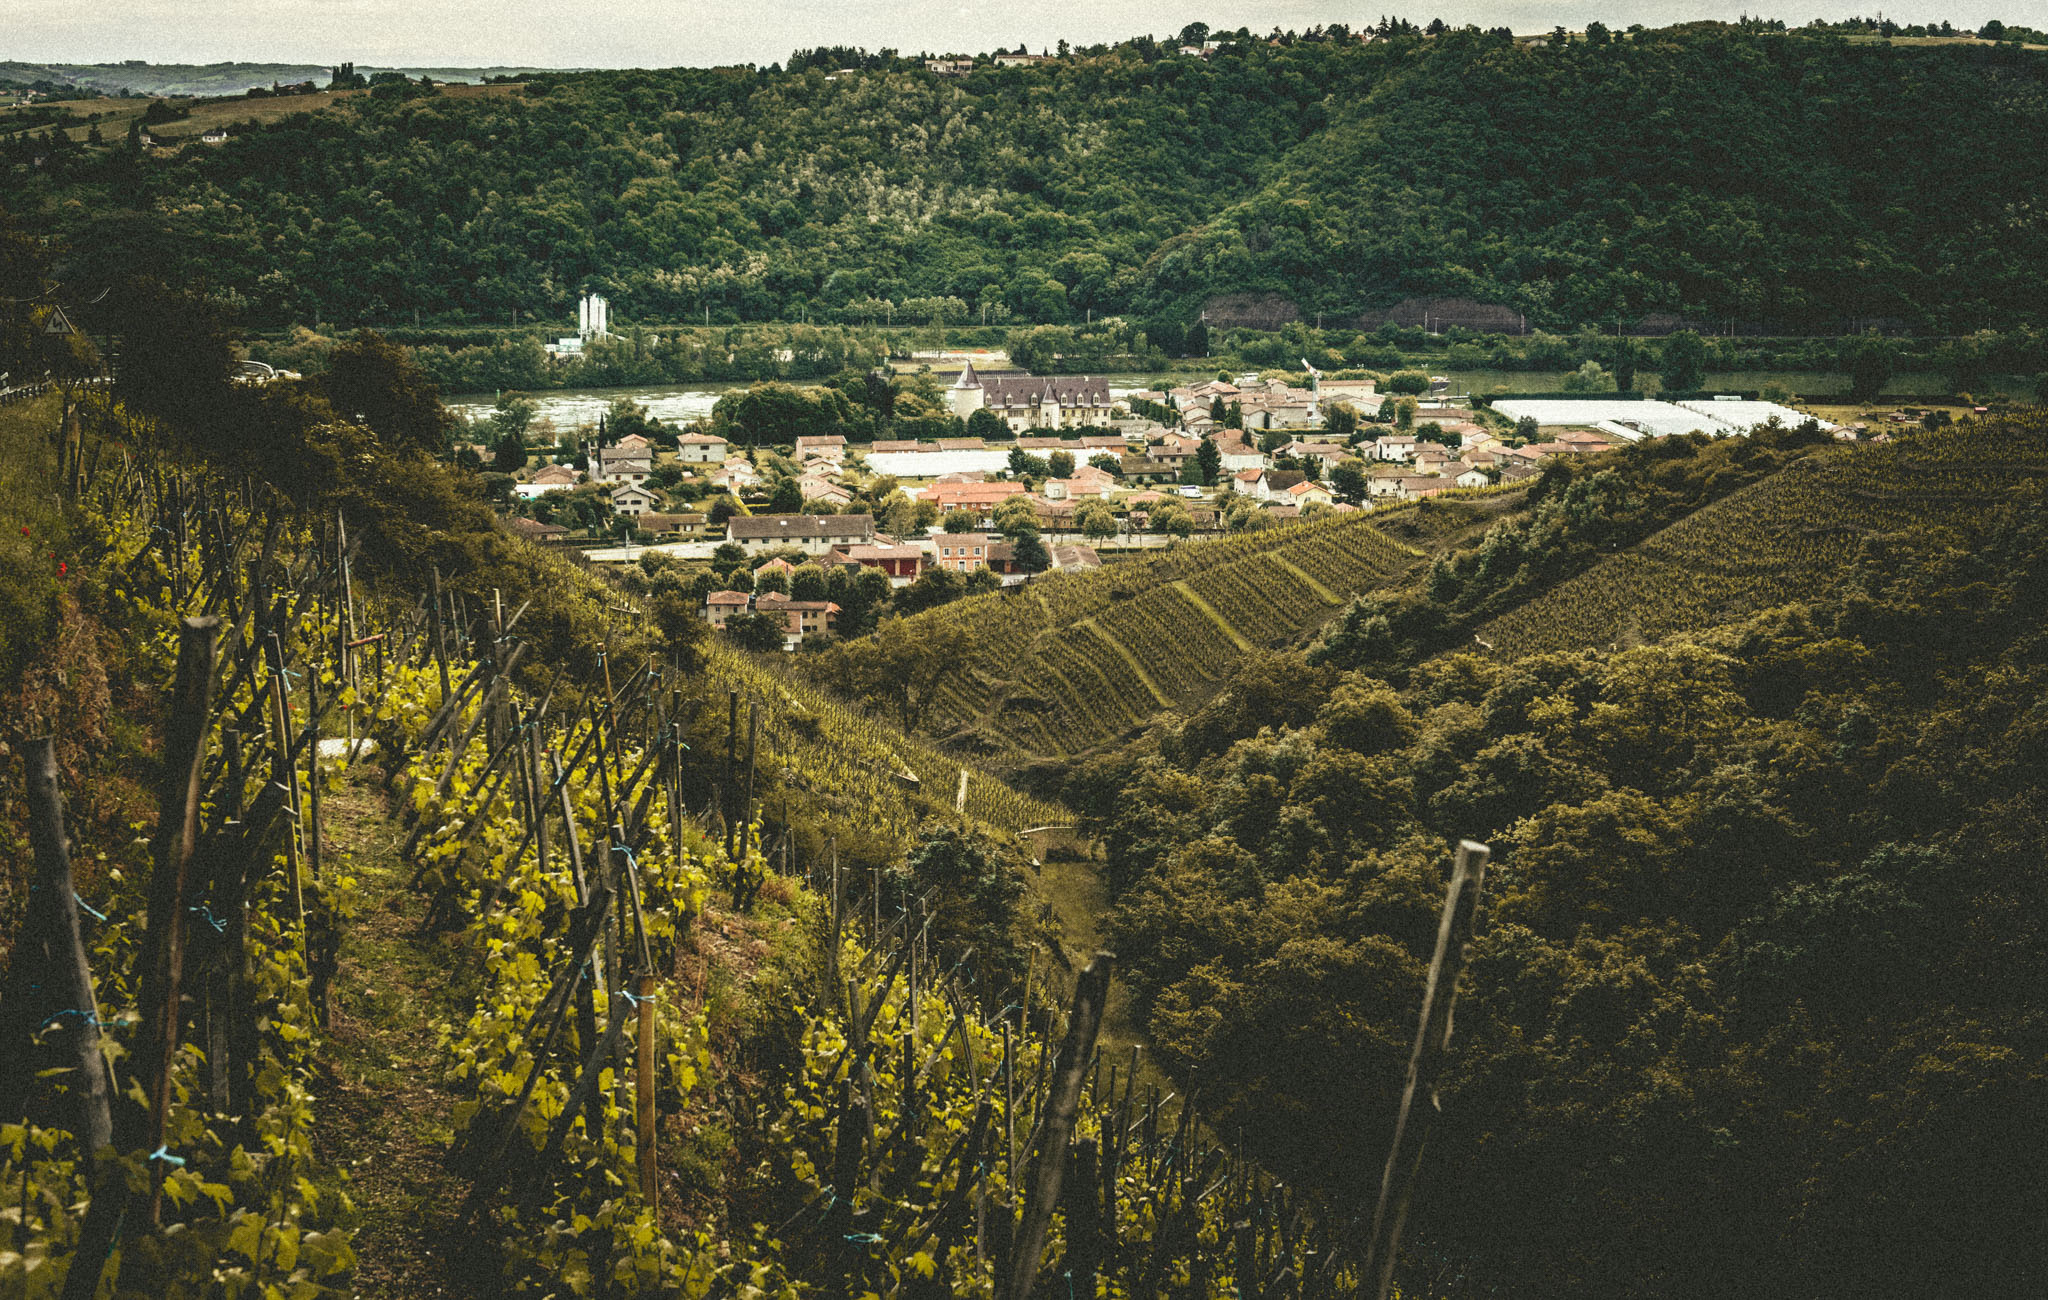 France : Northern Rhone : Village of Ampuis as seen from Moutonnes and Grand Taillis vineyards in Cote Rotie